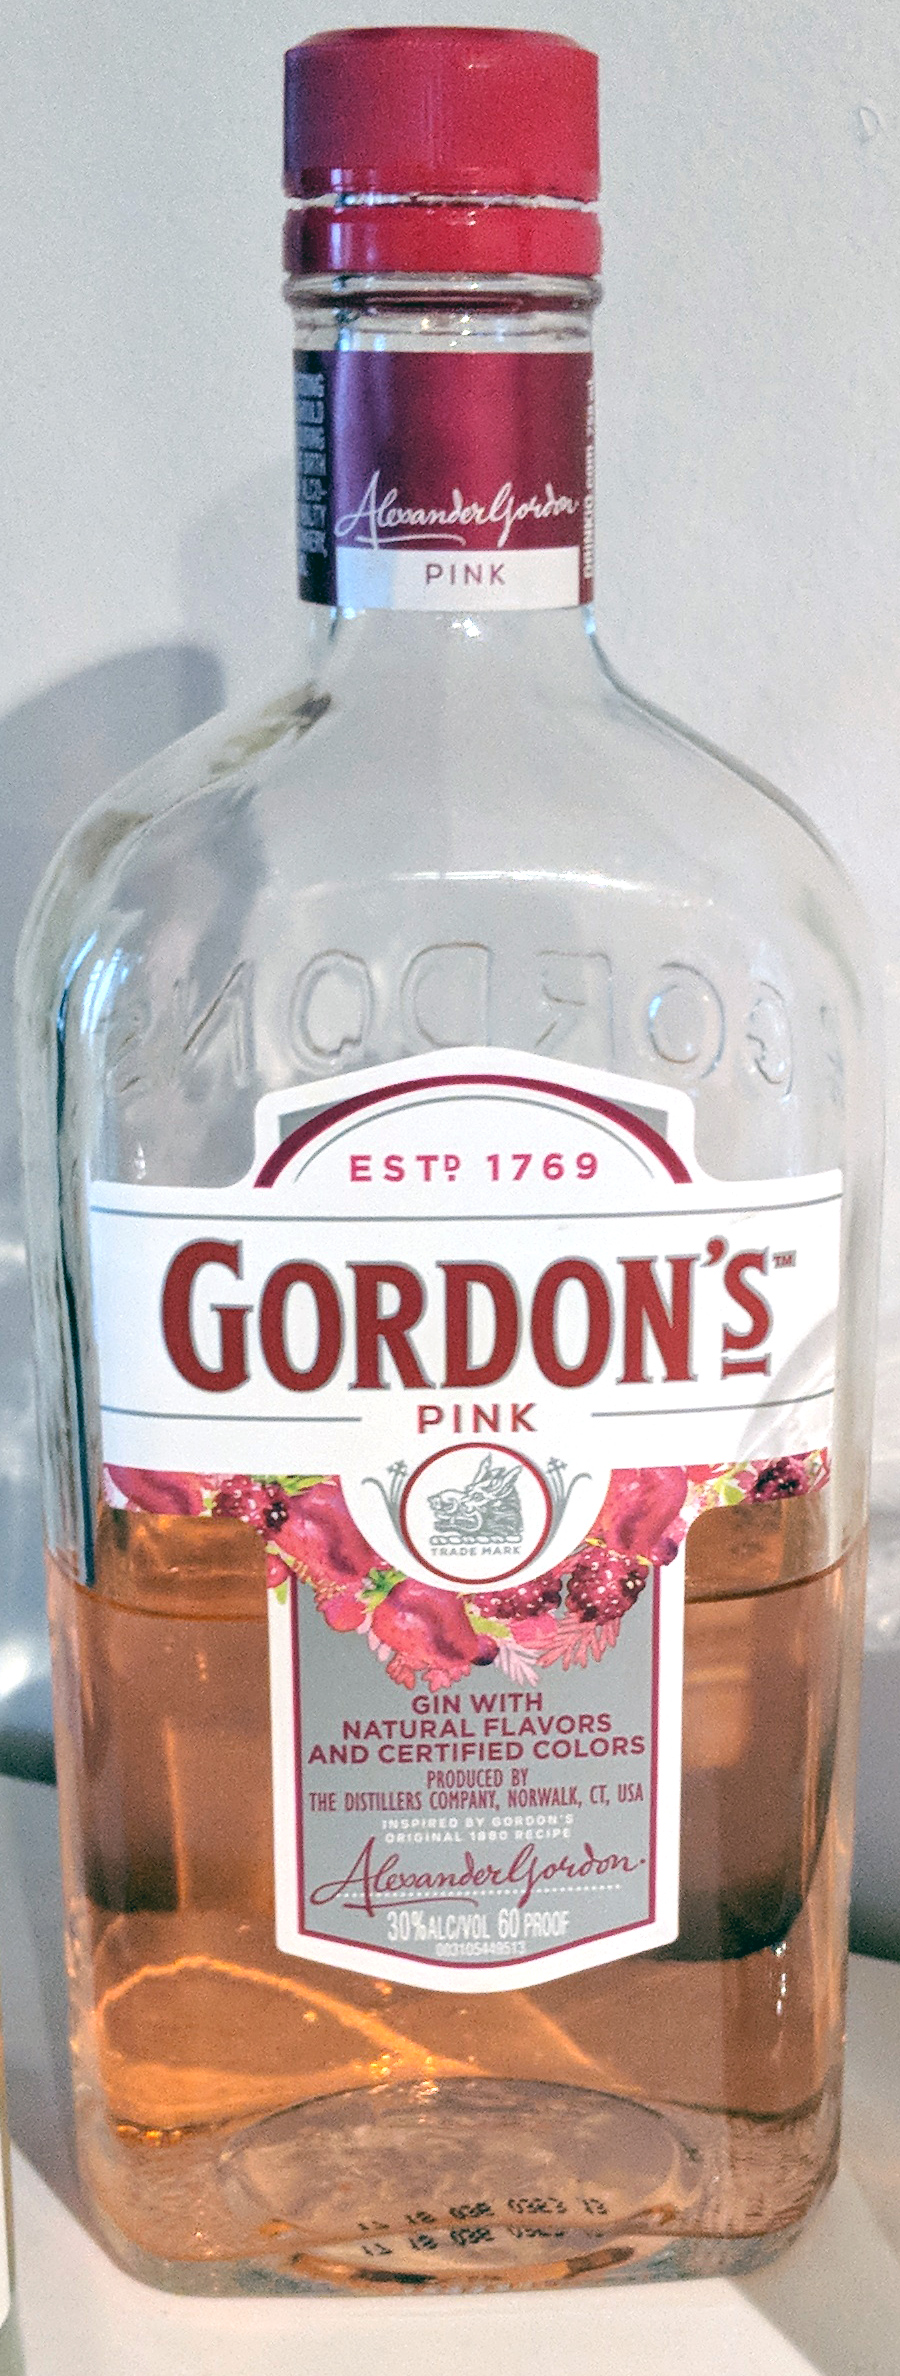 Gordon S Pink Gin 30 Berry Flavored Gin Review And Rating The Gin Is In